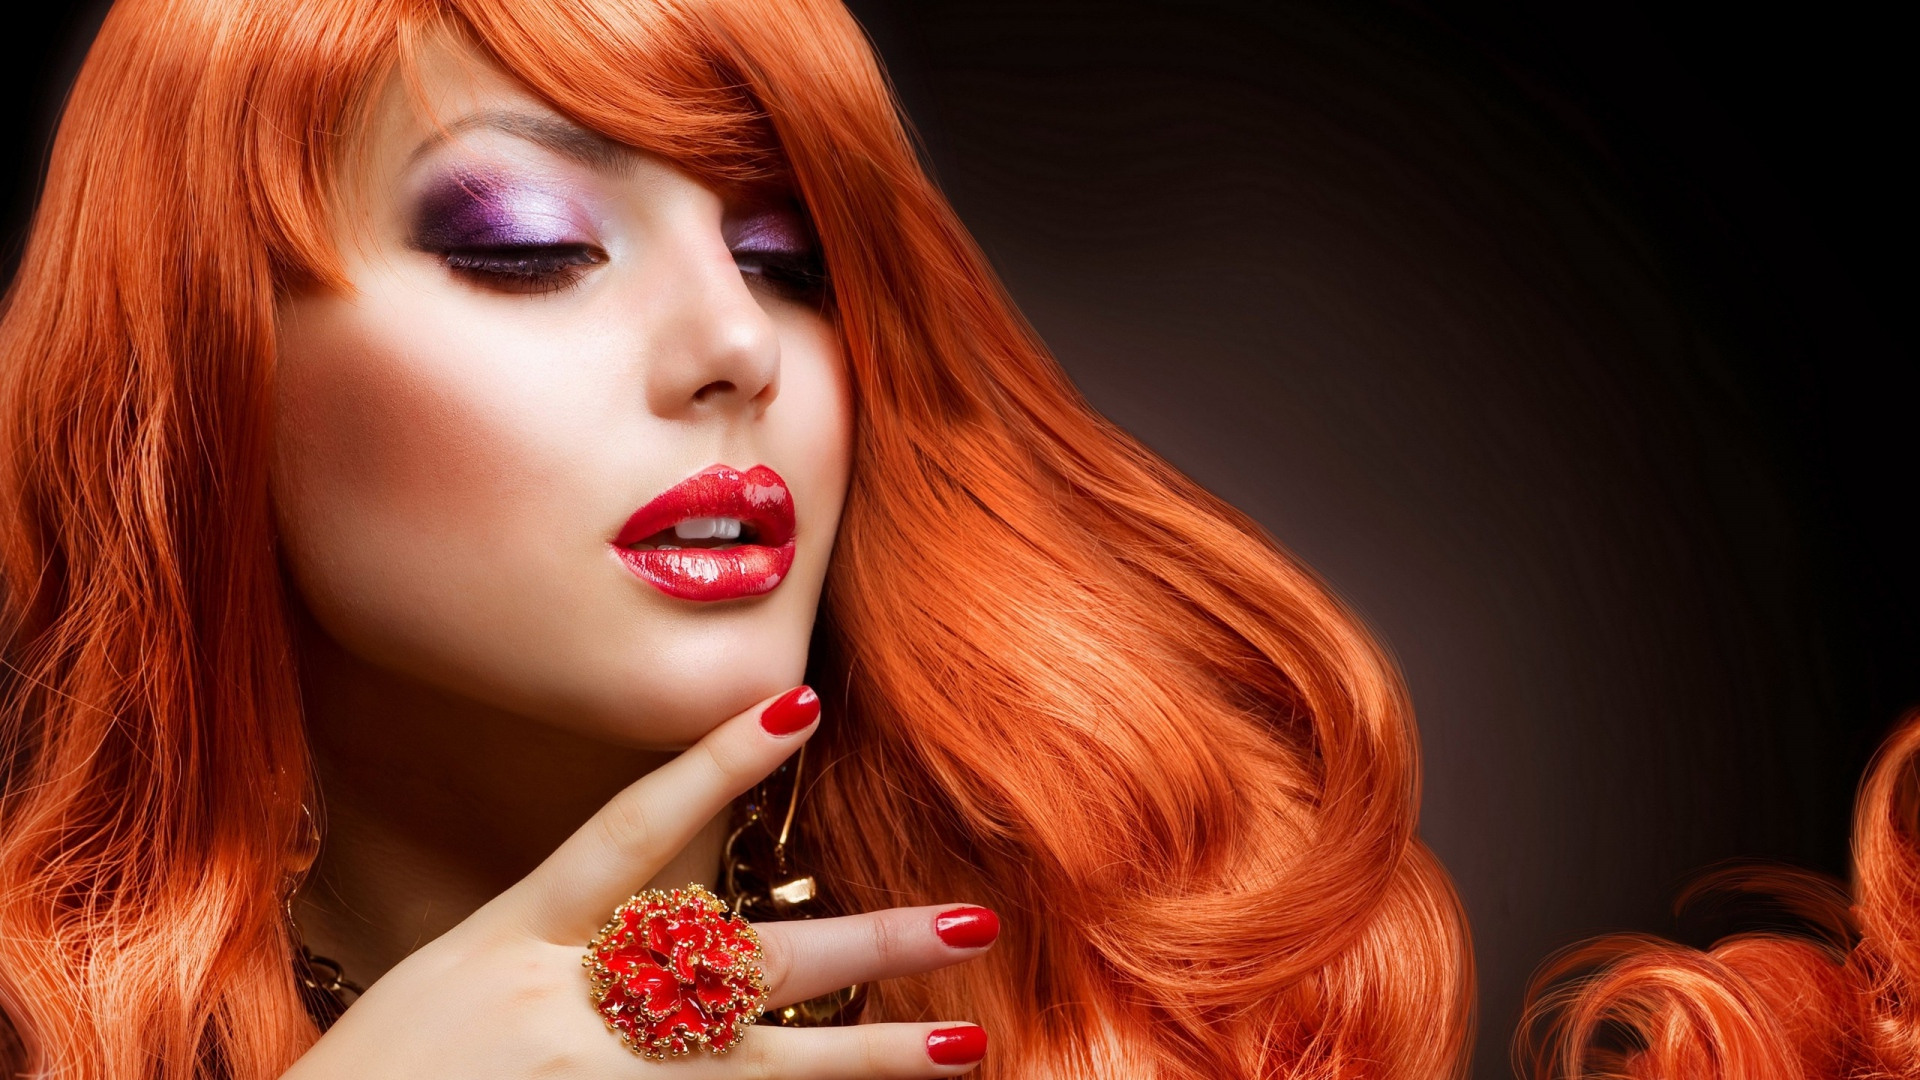 Download Wallpaper 1920x1080 Girl Red Hair Makeup Manicure Face Full Hd 1080p Hd Background